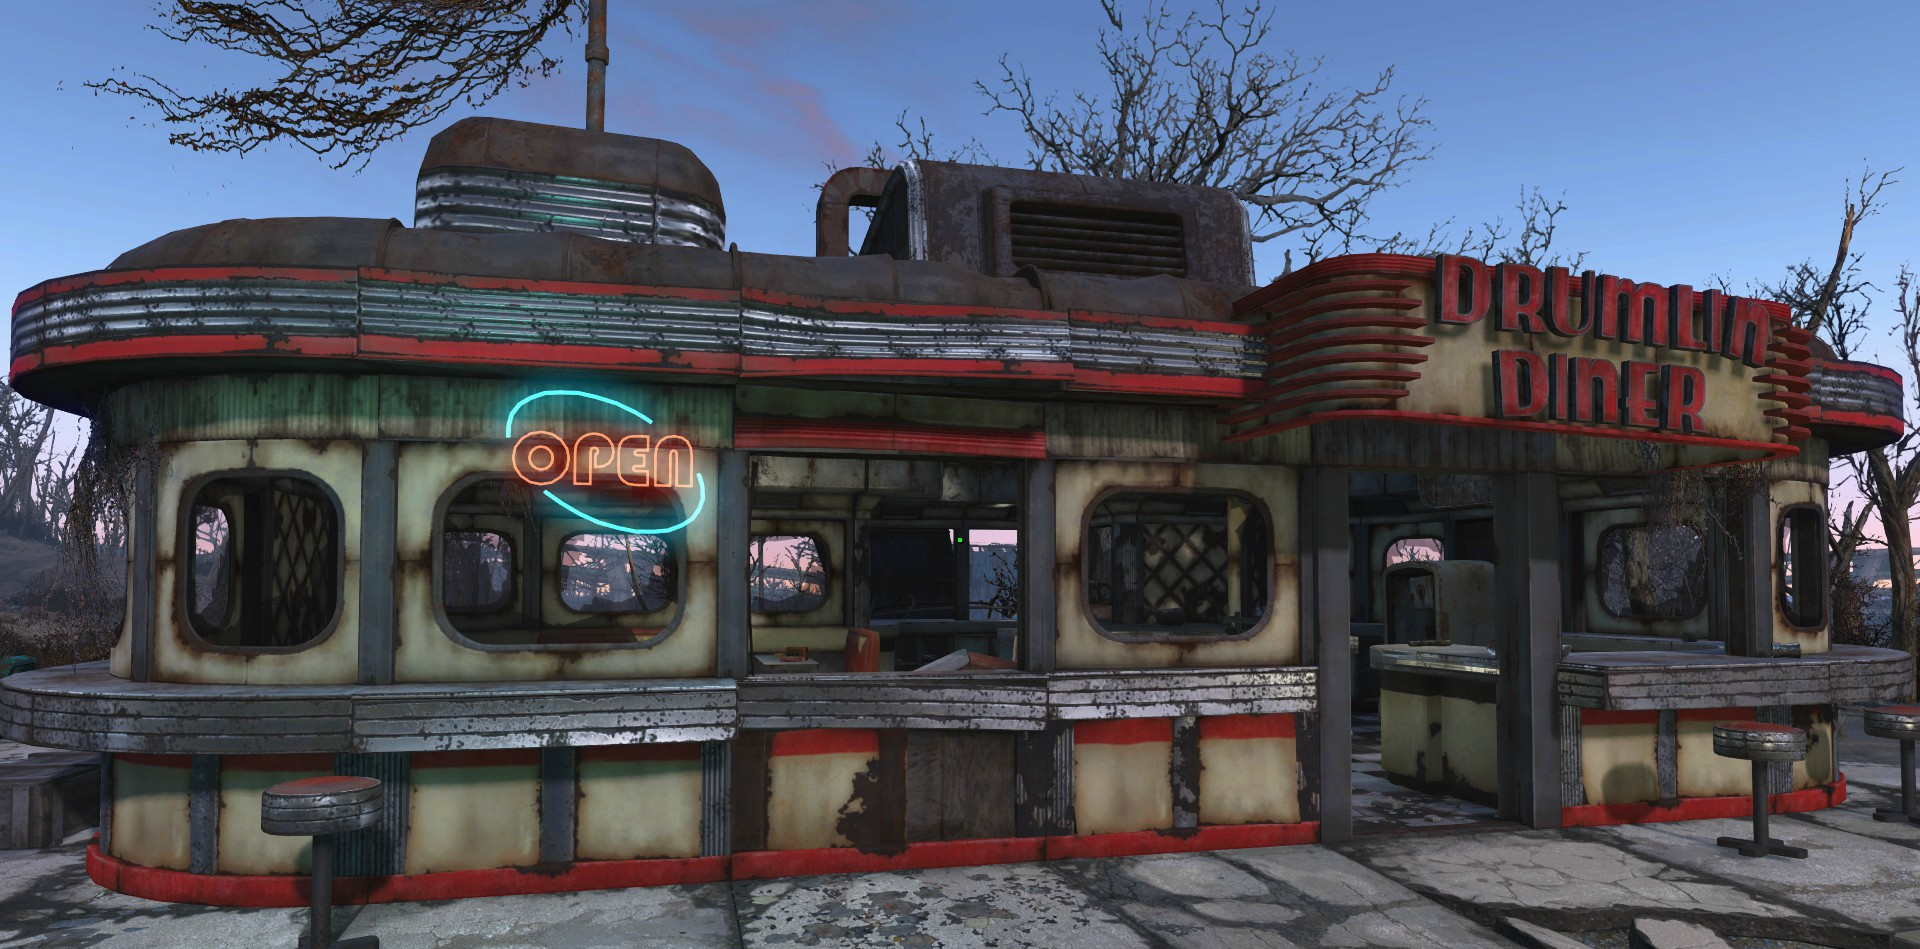 Drumlin diner fallout wiki fandom powered by wikia for Diner picture